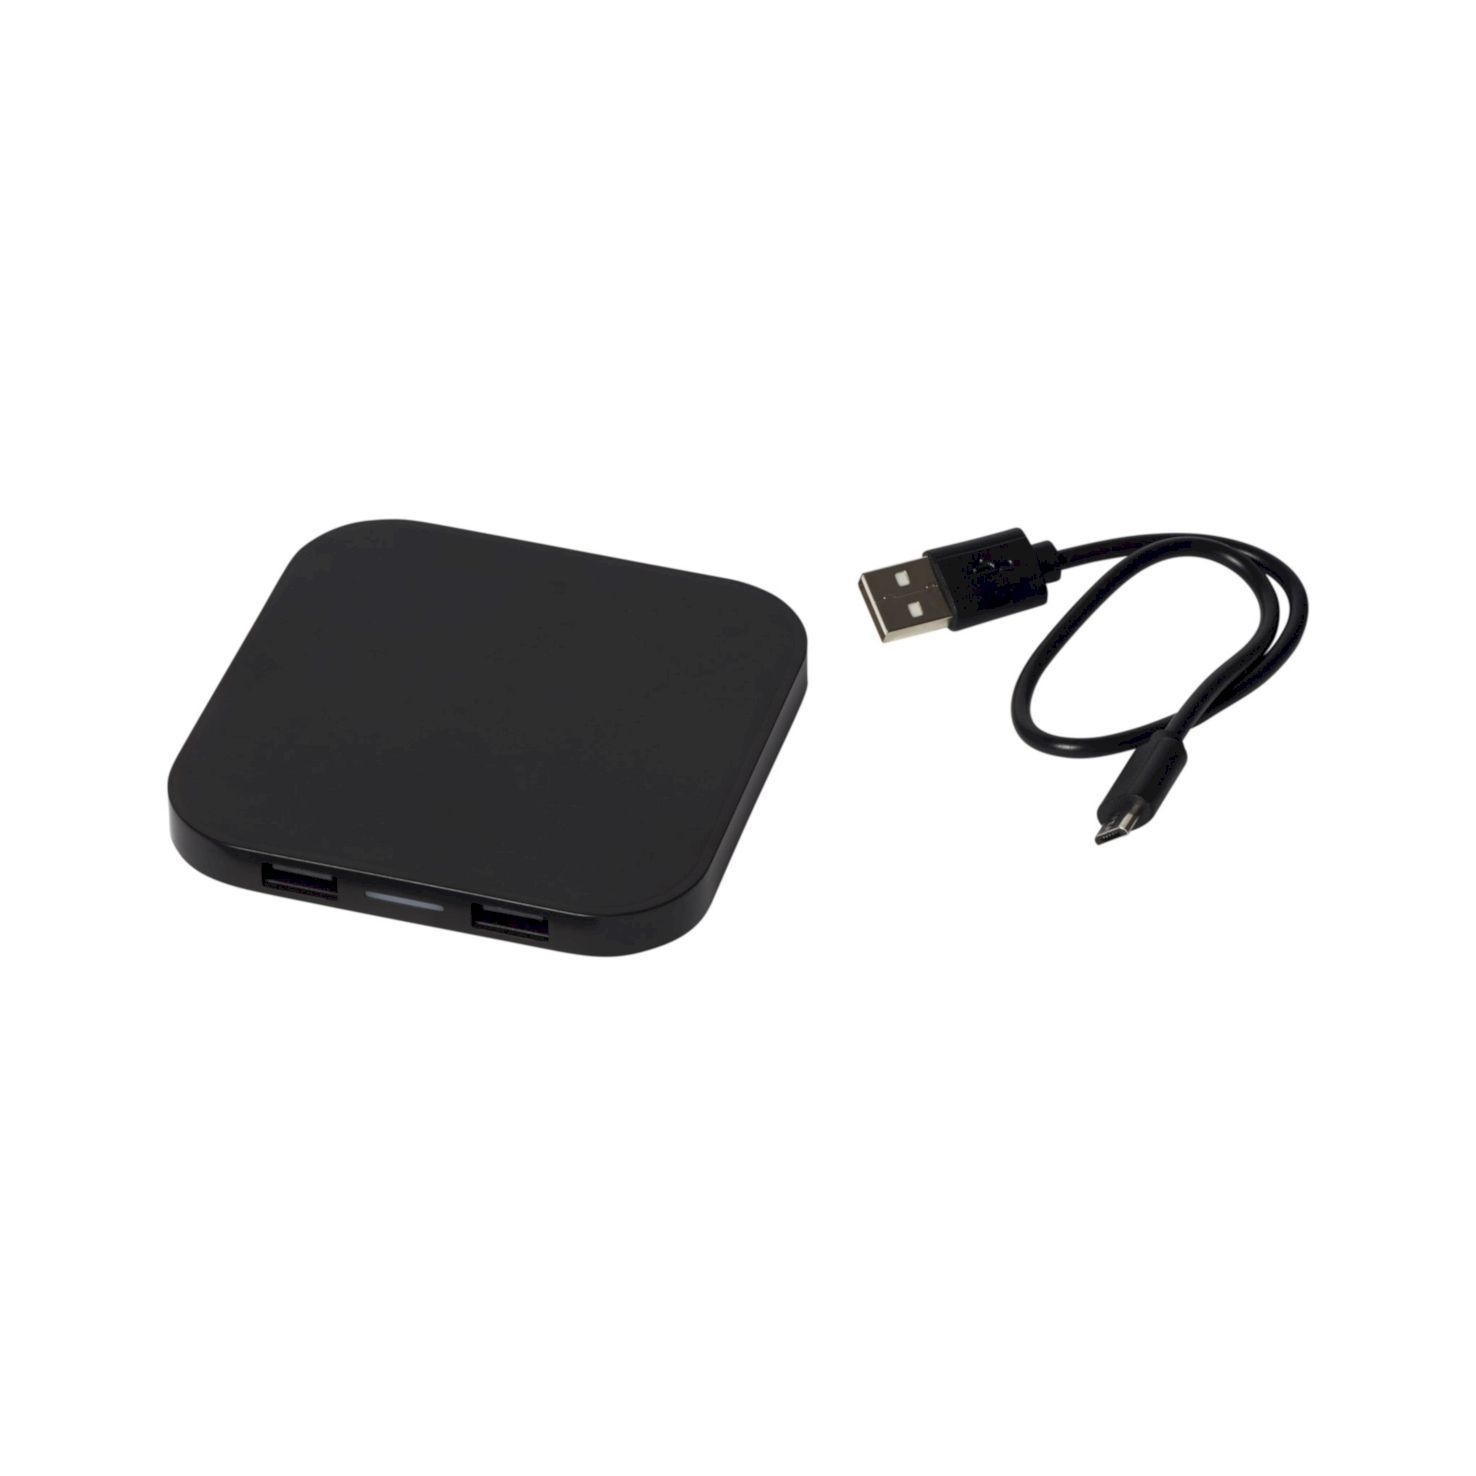 Zwarte Wireless Charger | 2 USB poorten